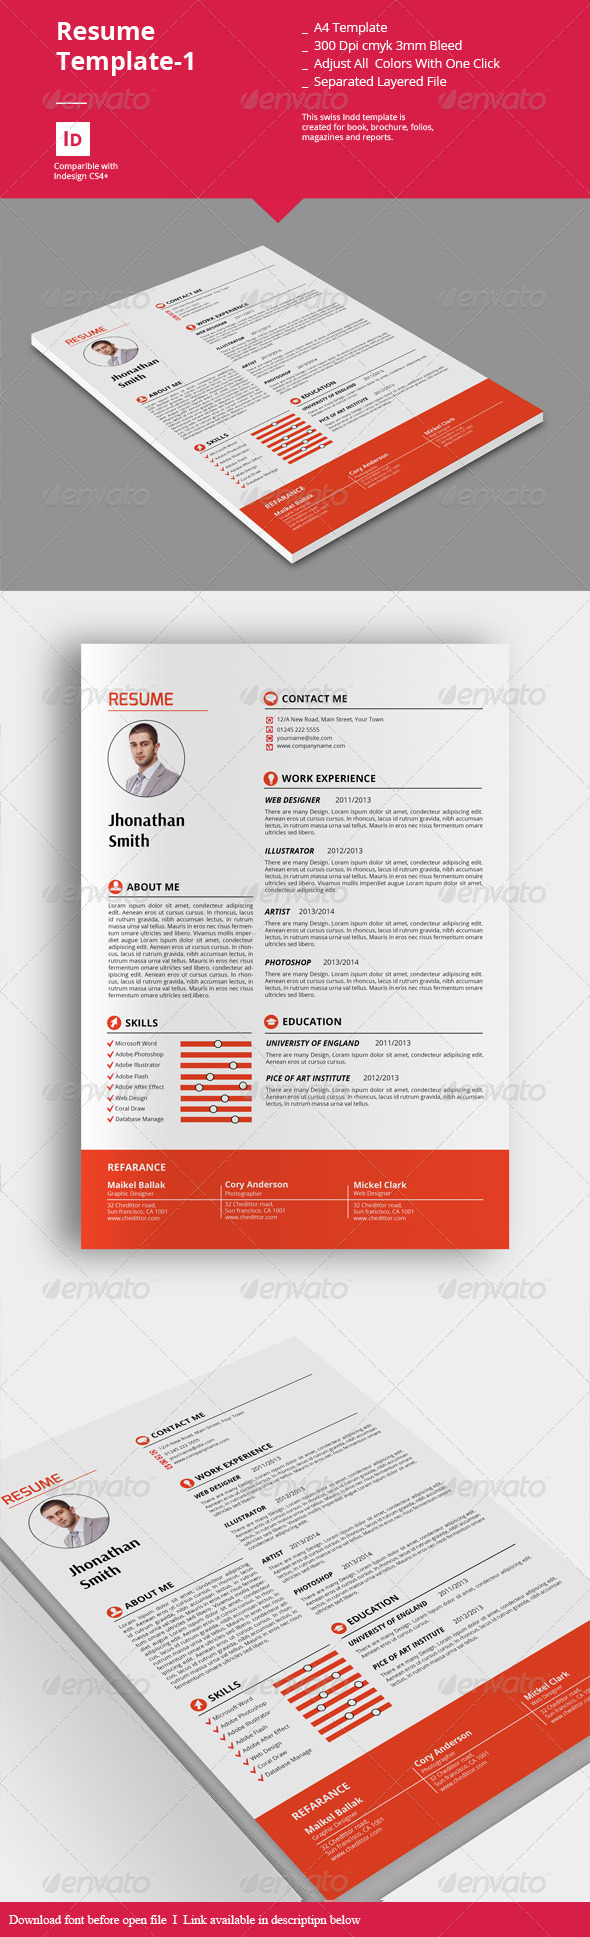 GraphicRiver Resume Templates-1 8234576